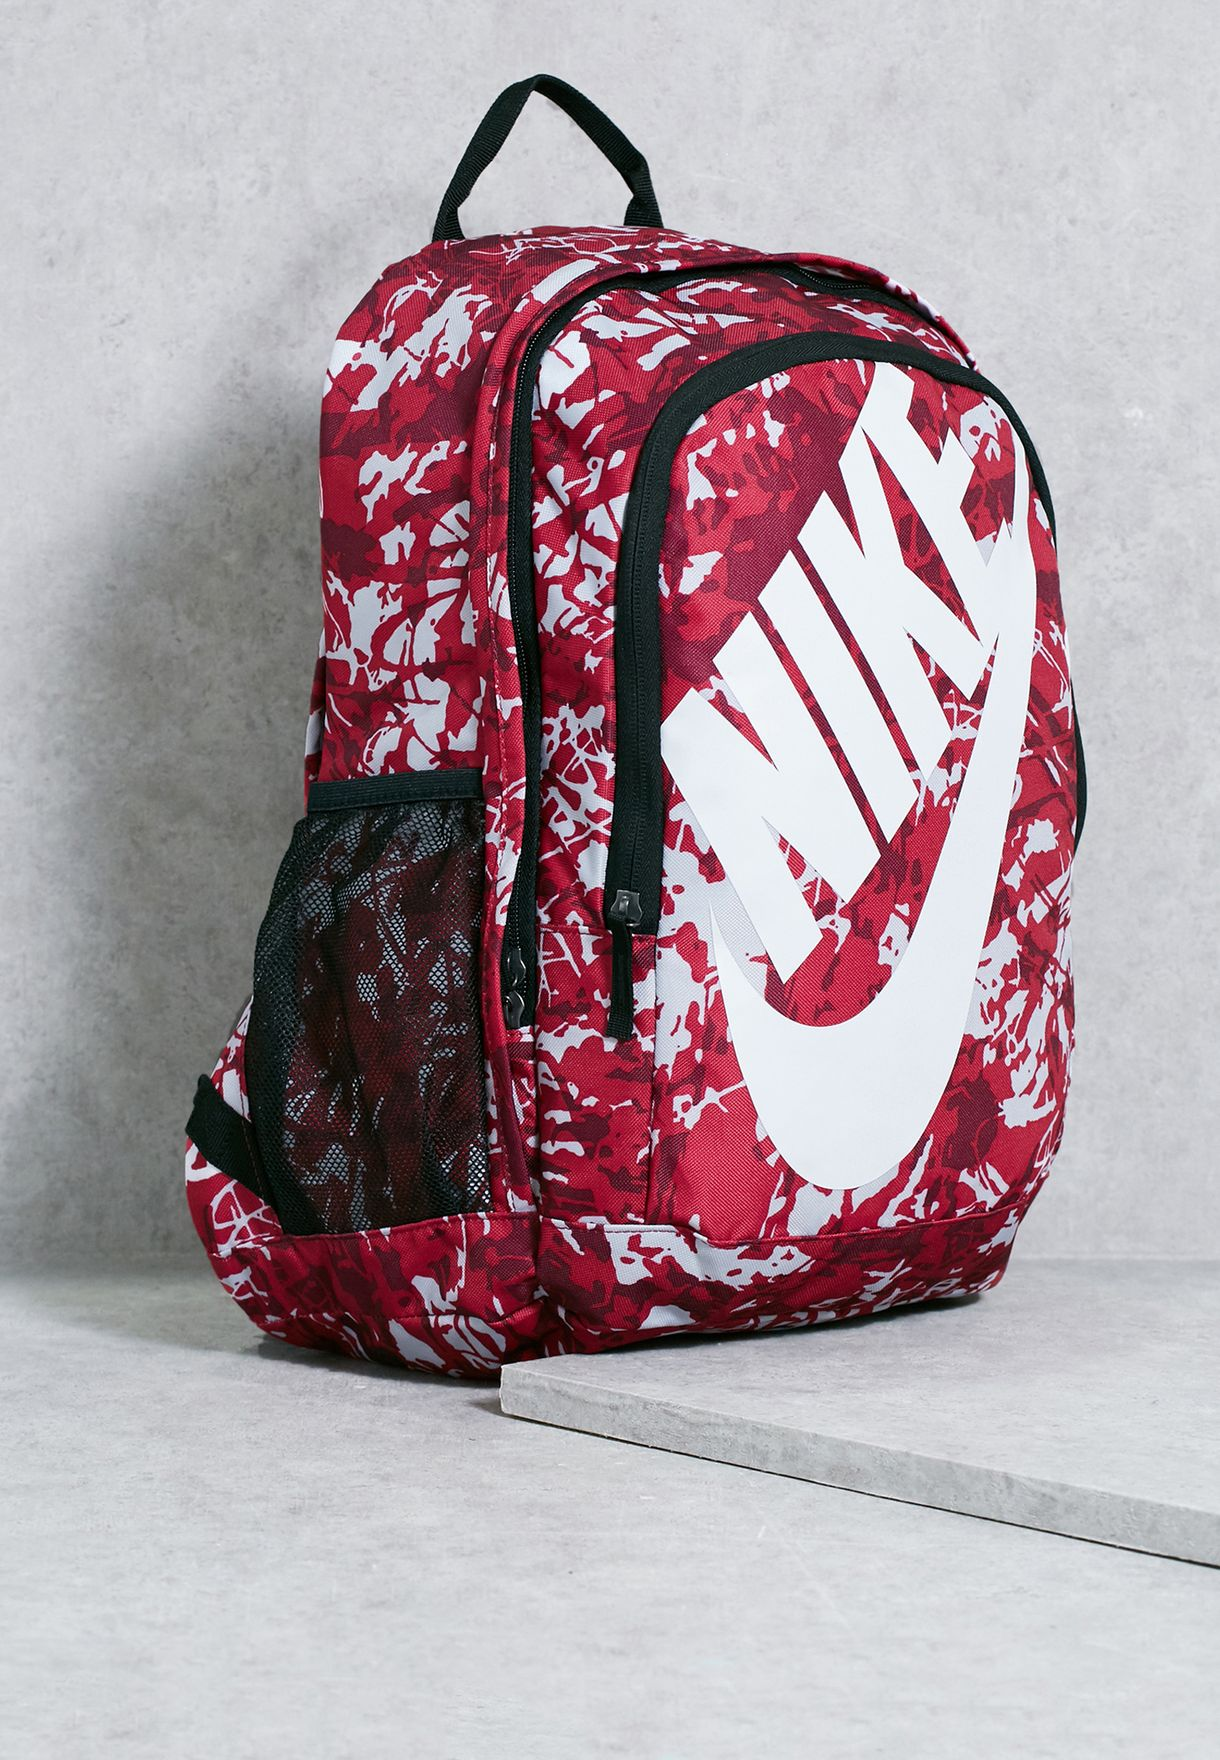 ec750fe7e4 Shop Nike prints Hayward Futura 2.0 Printed Backpack BA5273-607 for ...